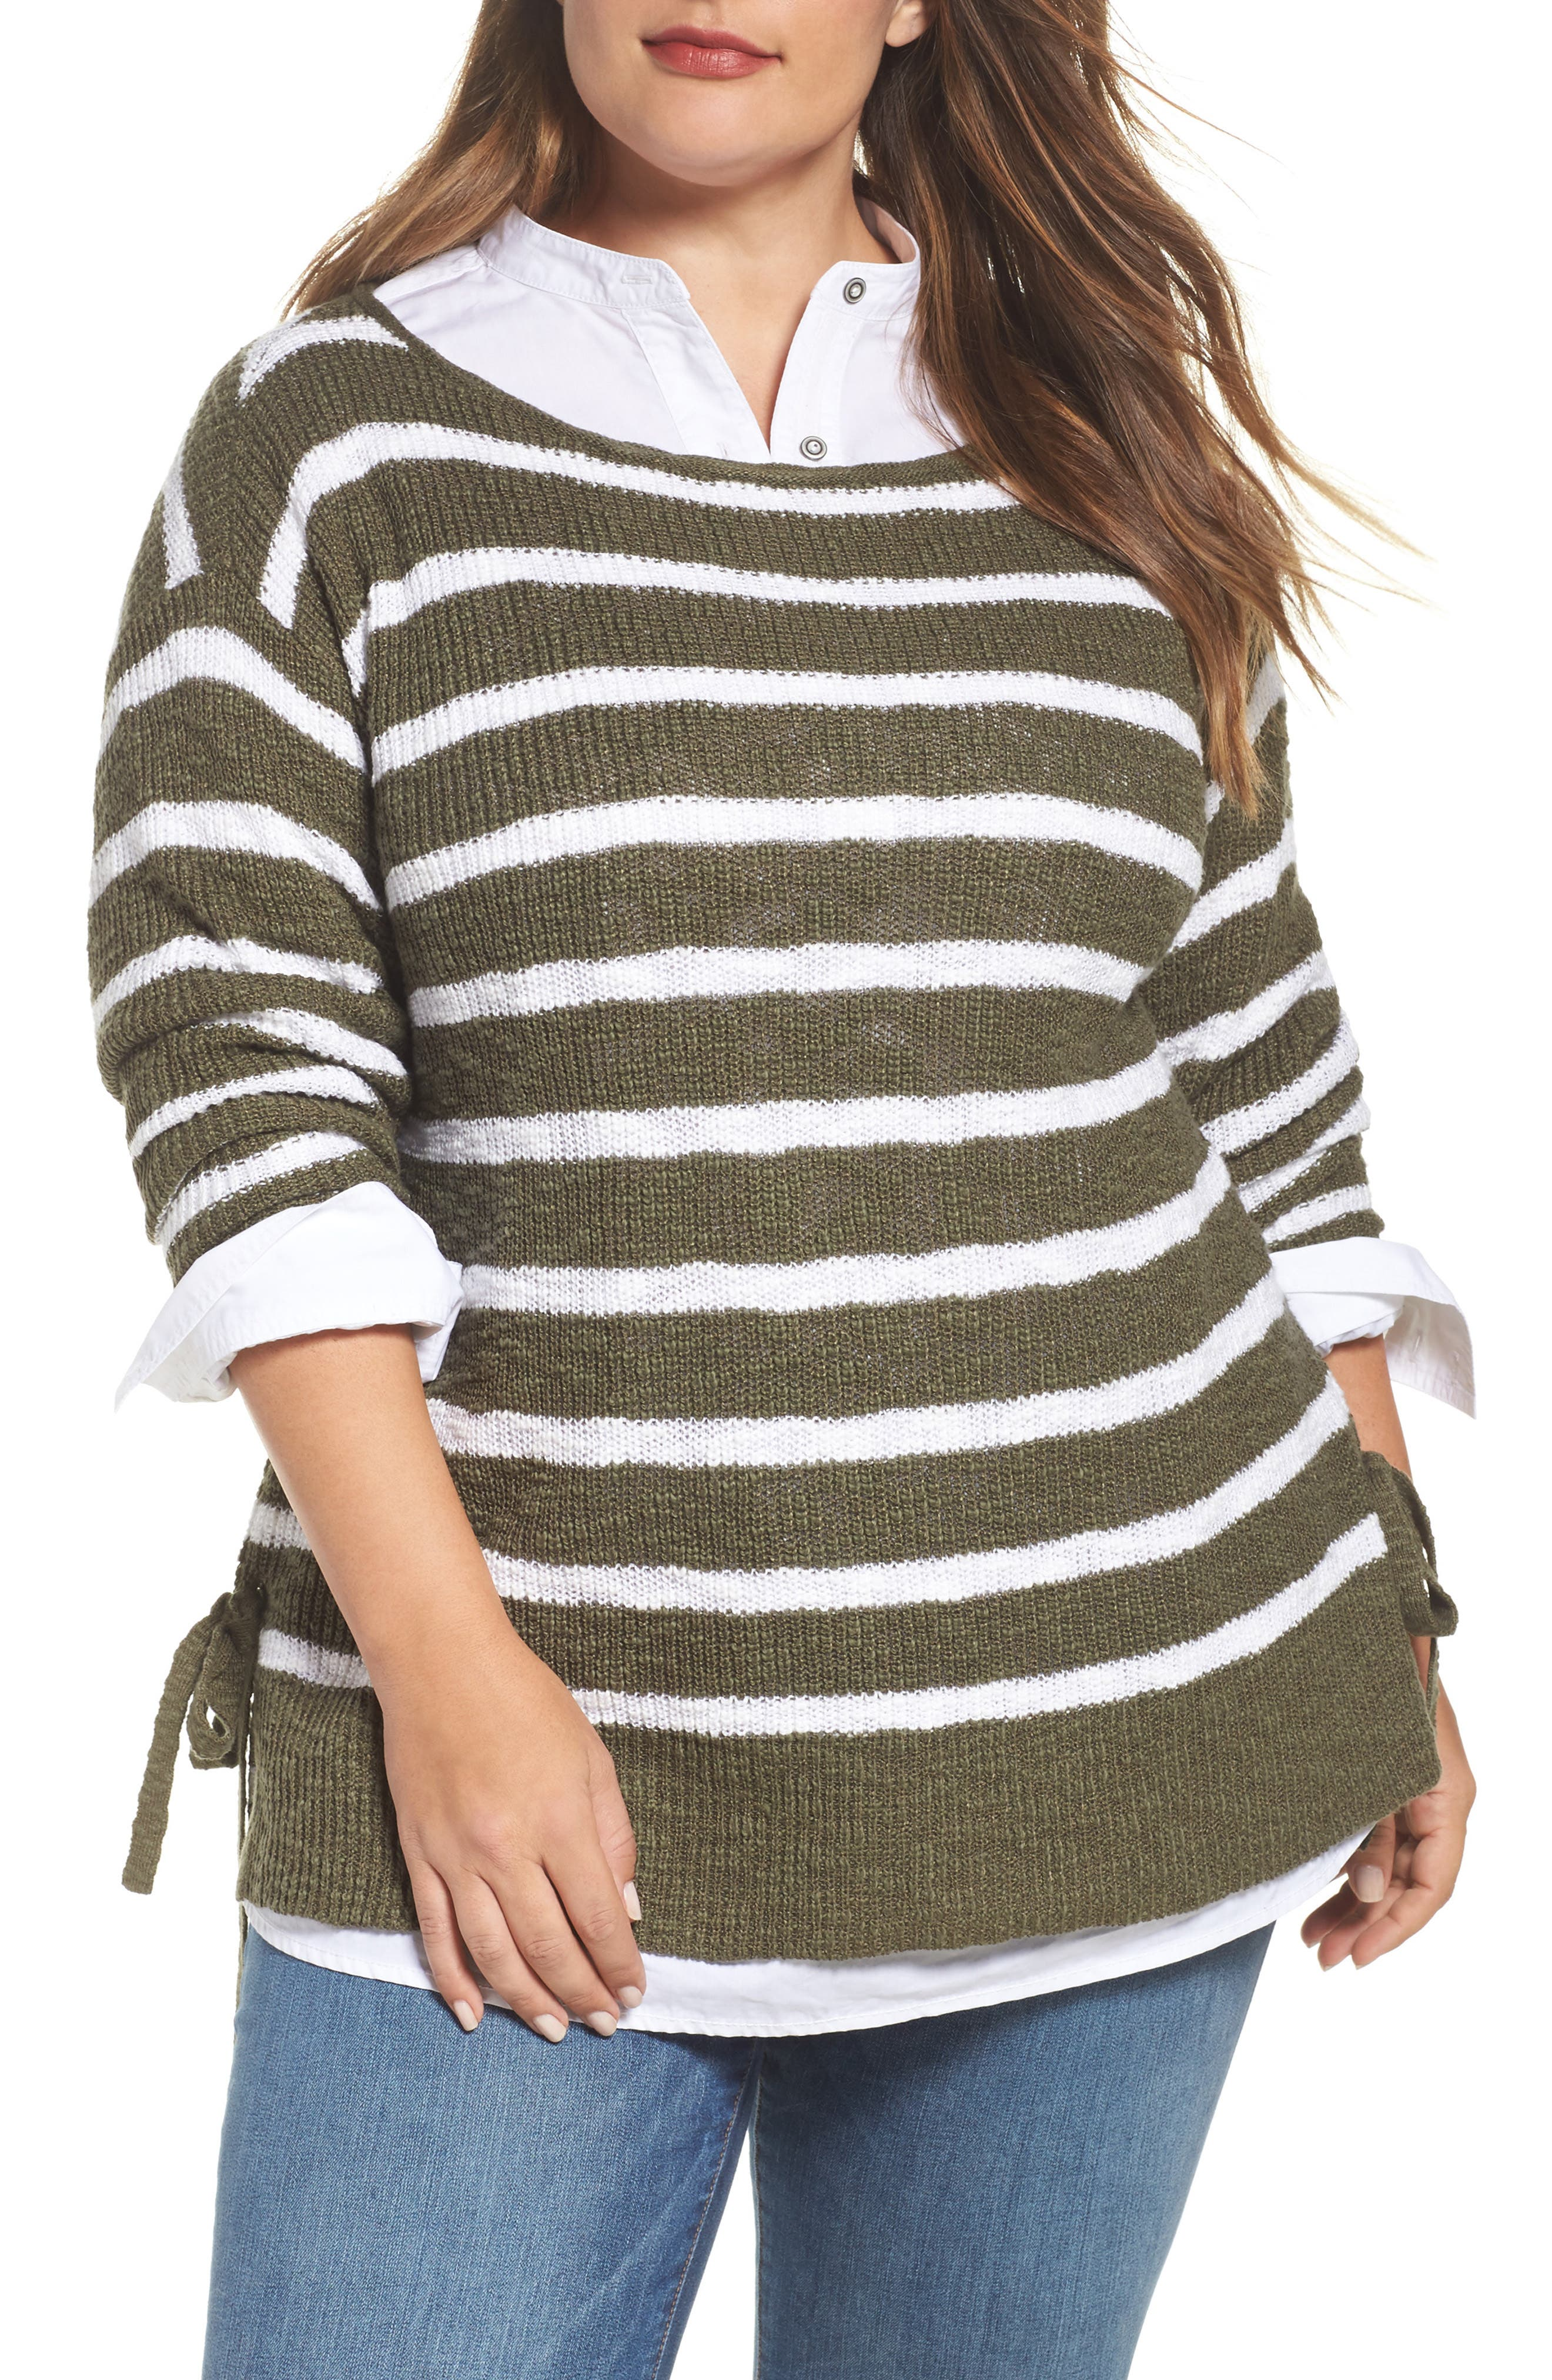 Tunic Sweater with Side Ties,                             Main thumbnail 1, color,                             Olive- White Stripe